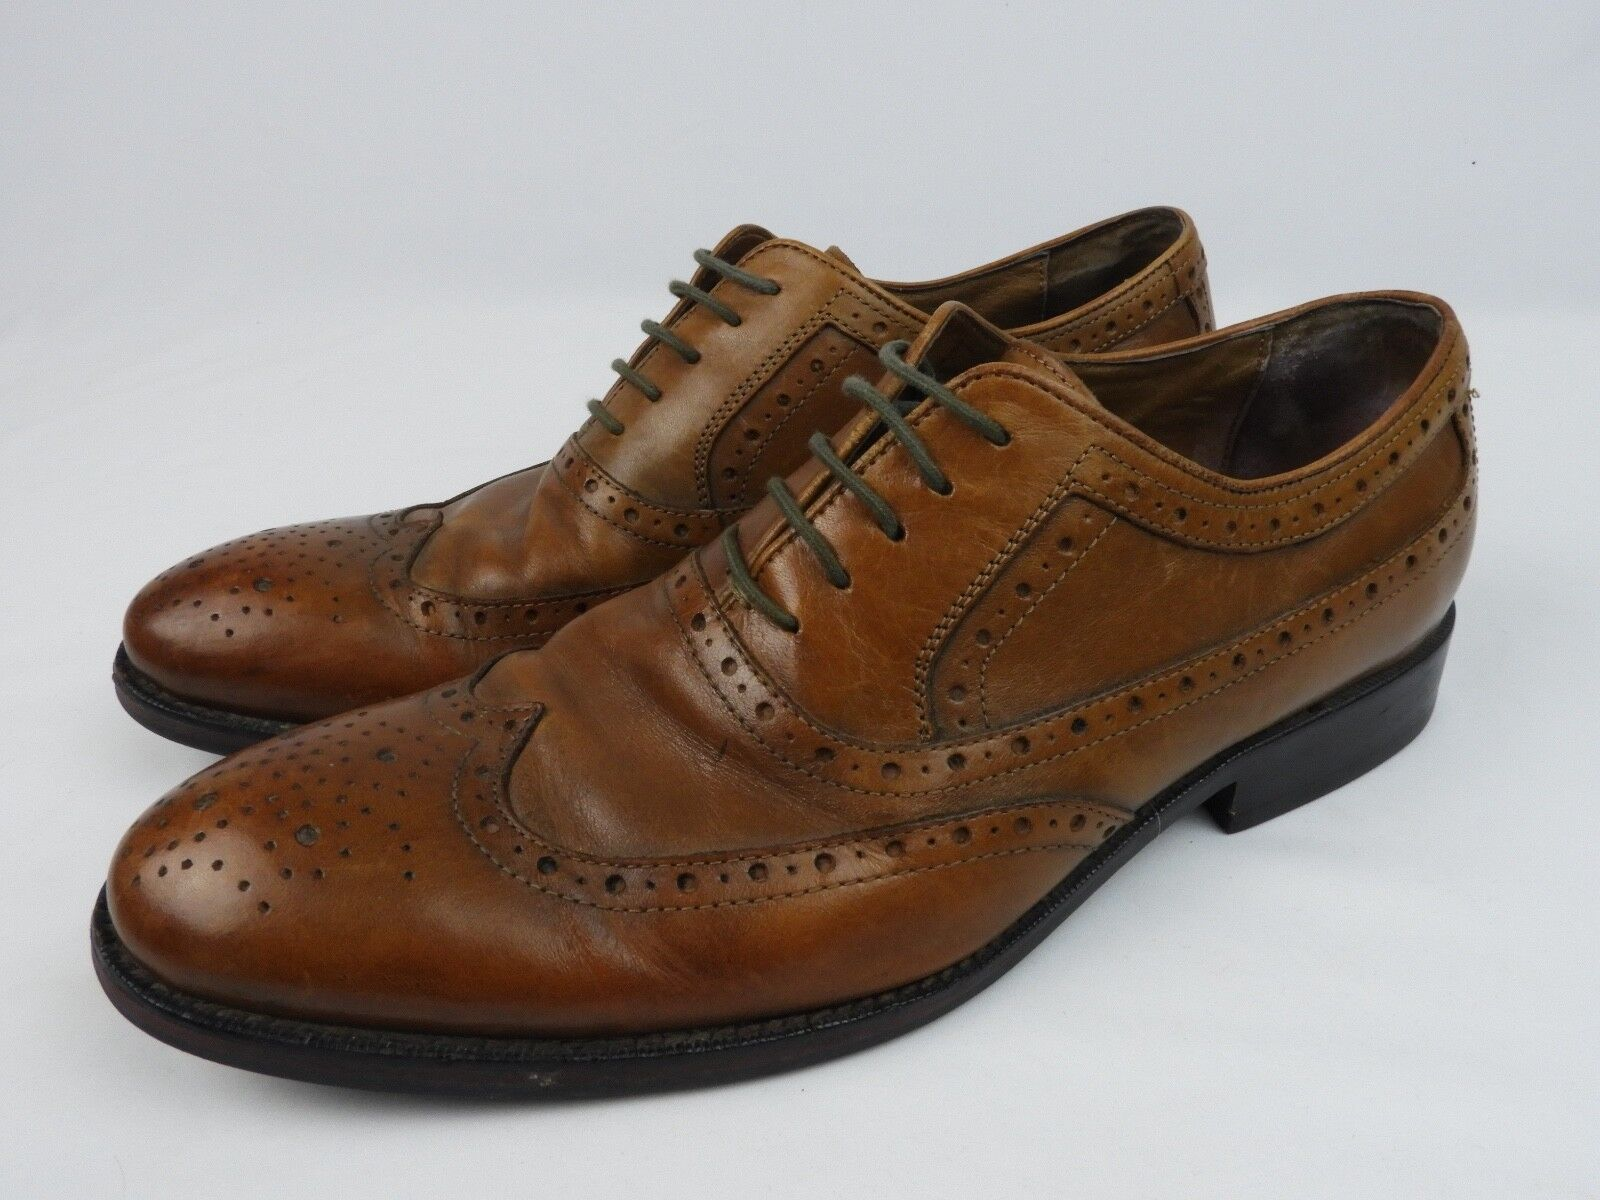 Johnston Murphy Tobacco Brown Wingtip Oxford shoes Size 8.5 M VG condition